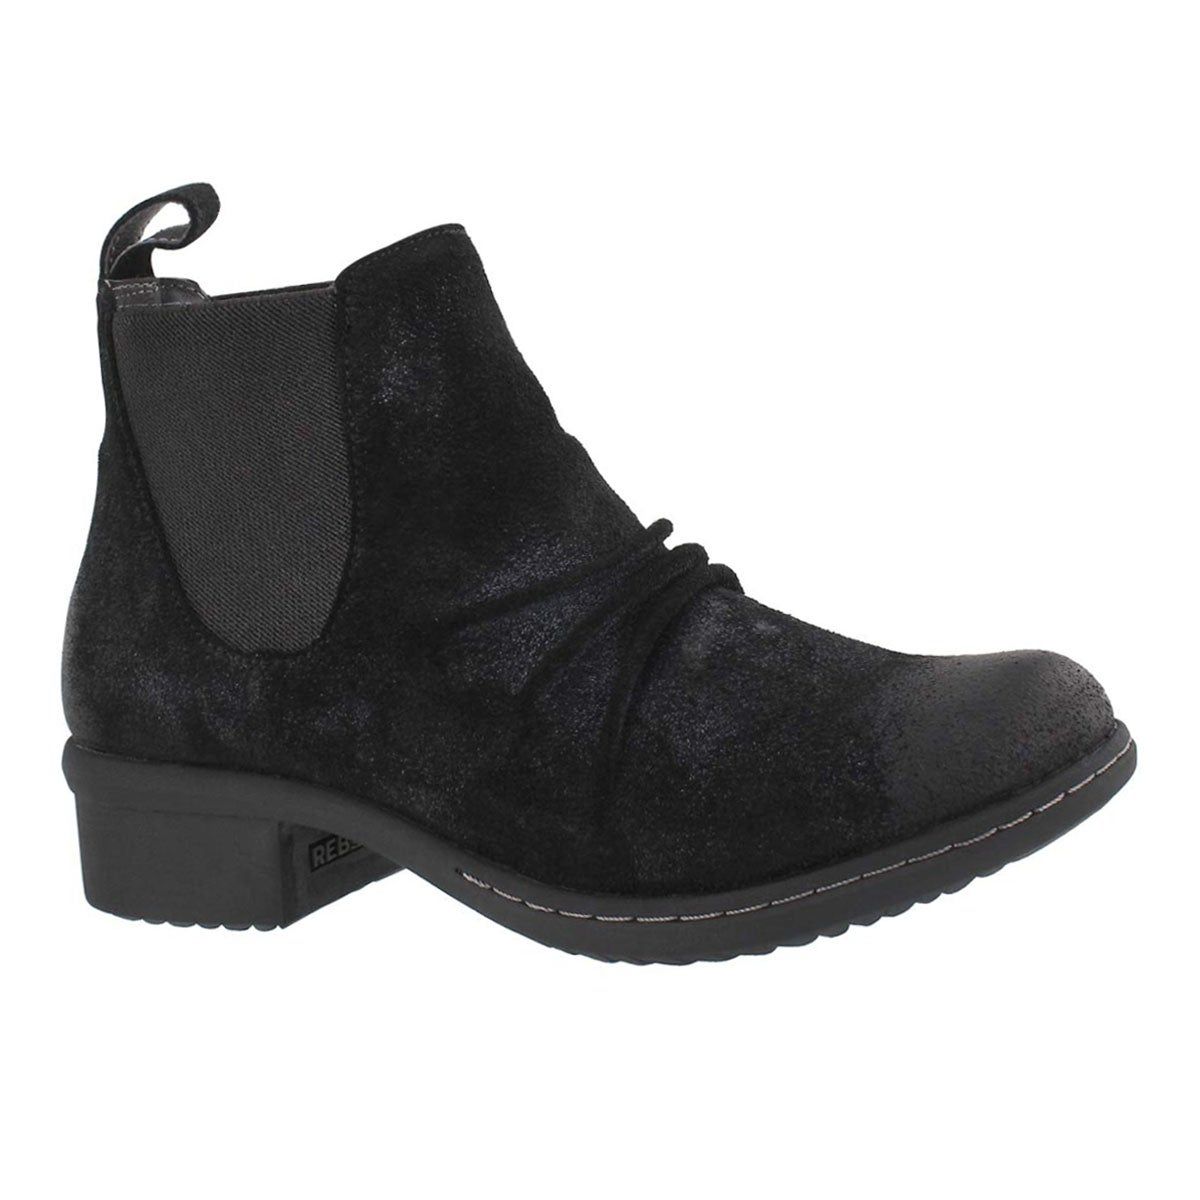 Women's AUBURN black wtpf slip on ankle boots